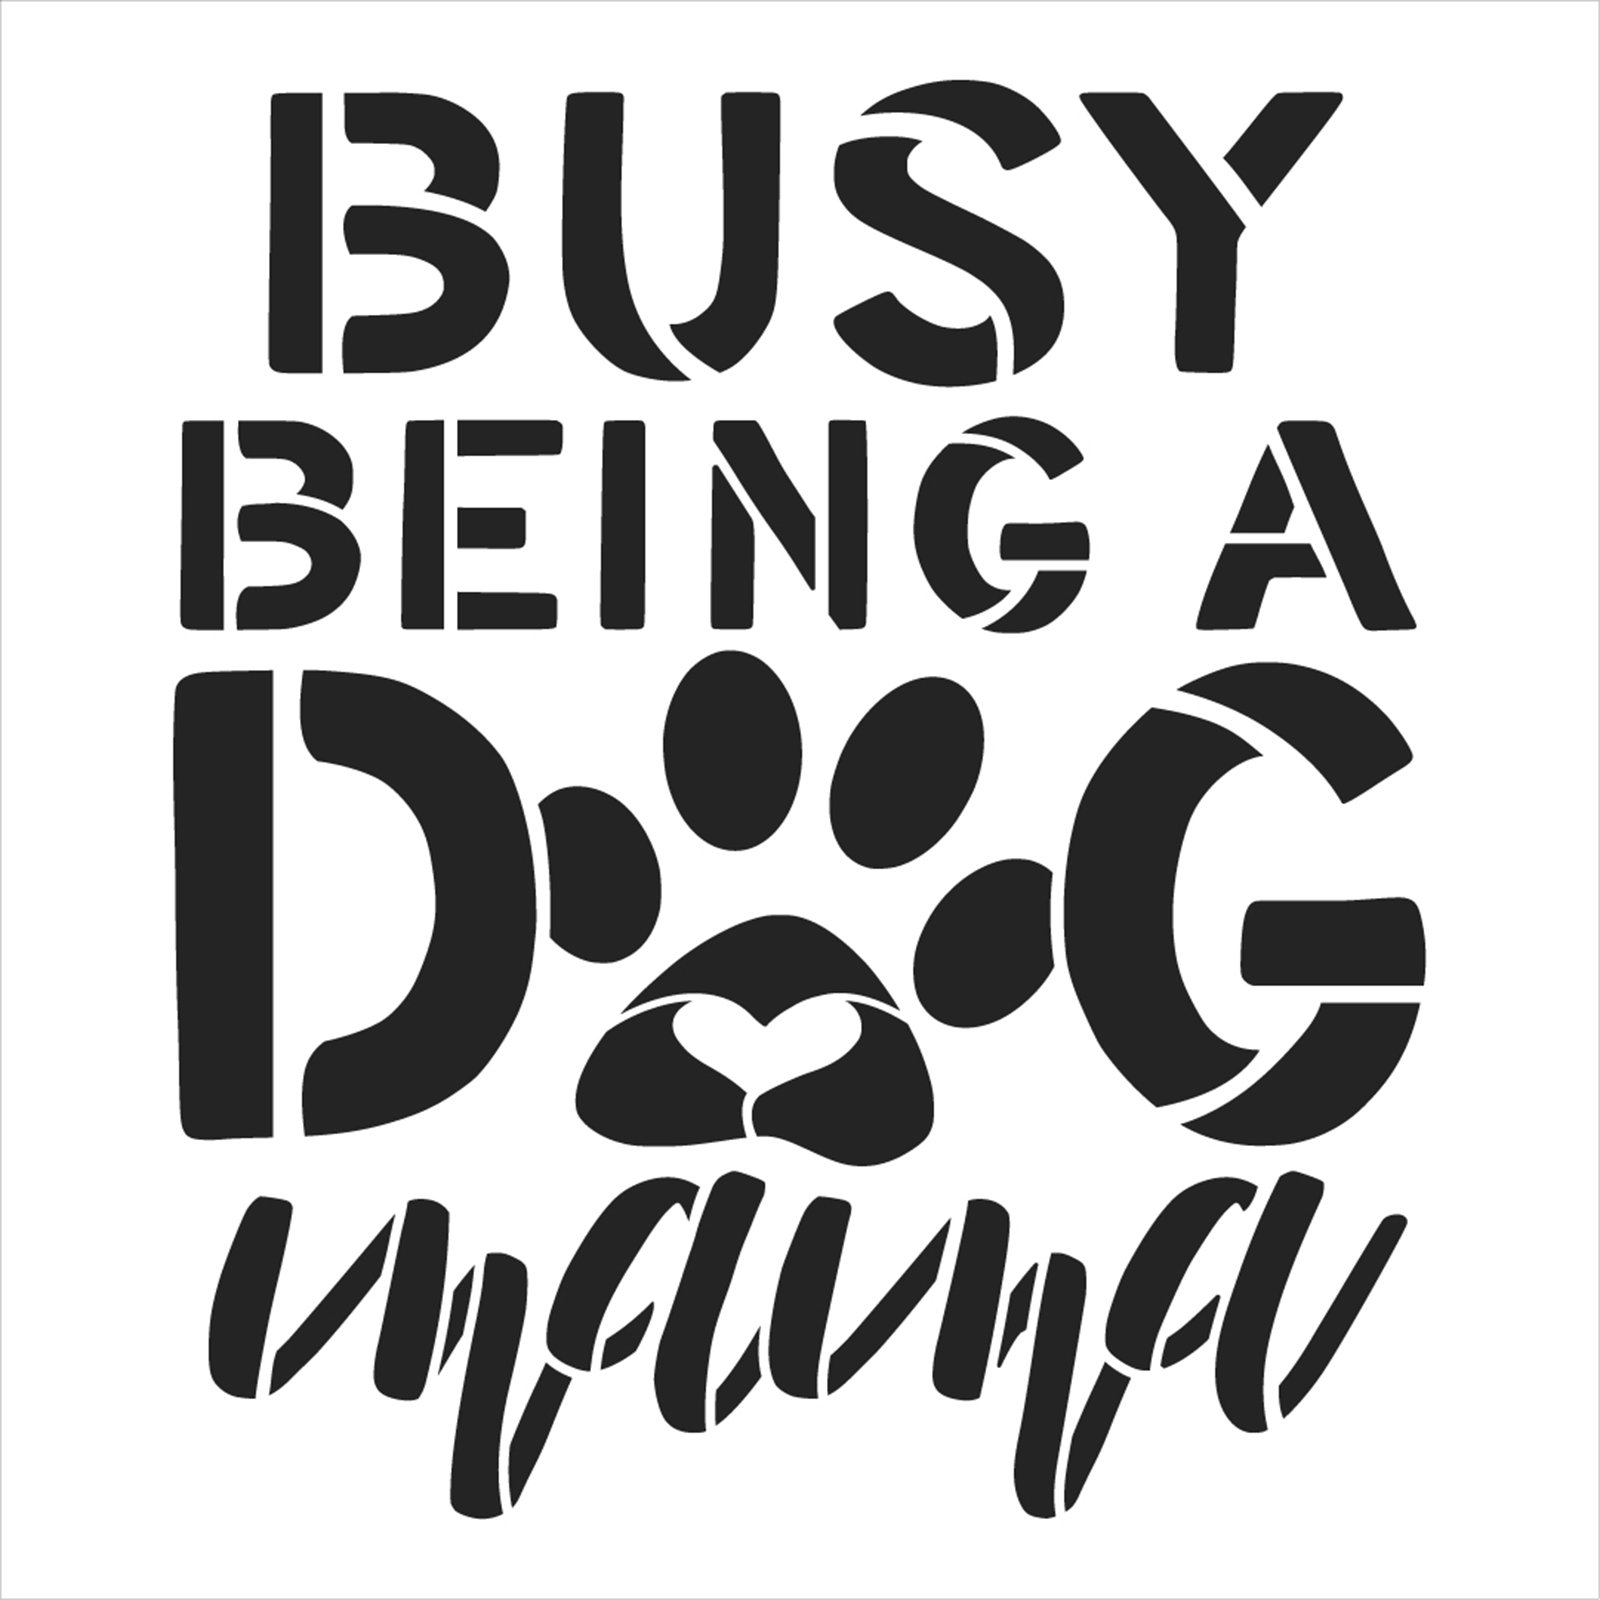 Busy Being a Dog Mom Stencil by StudioR12 | Craft DIY Animal Lover Home Decor | Paint Pawprint Heart Wood Sign | Reusable Mylar Template | Select Size